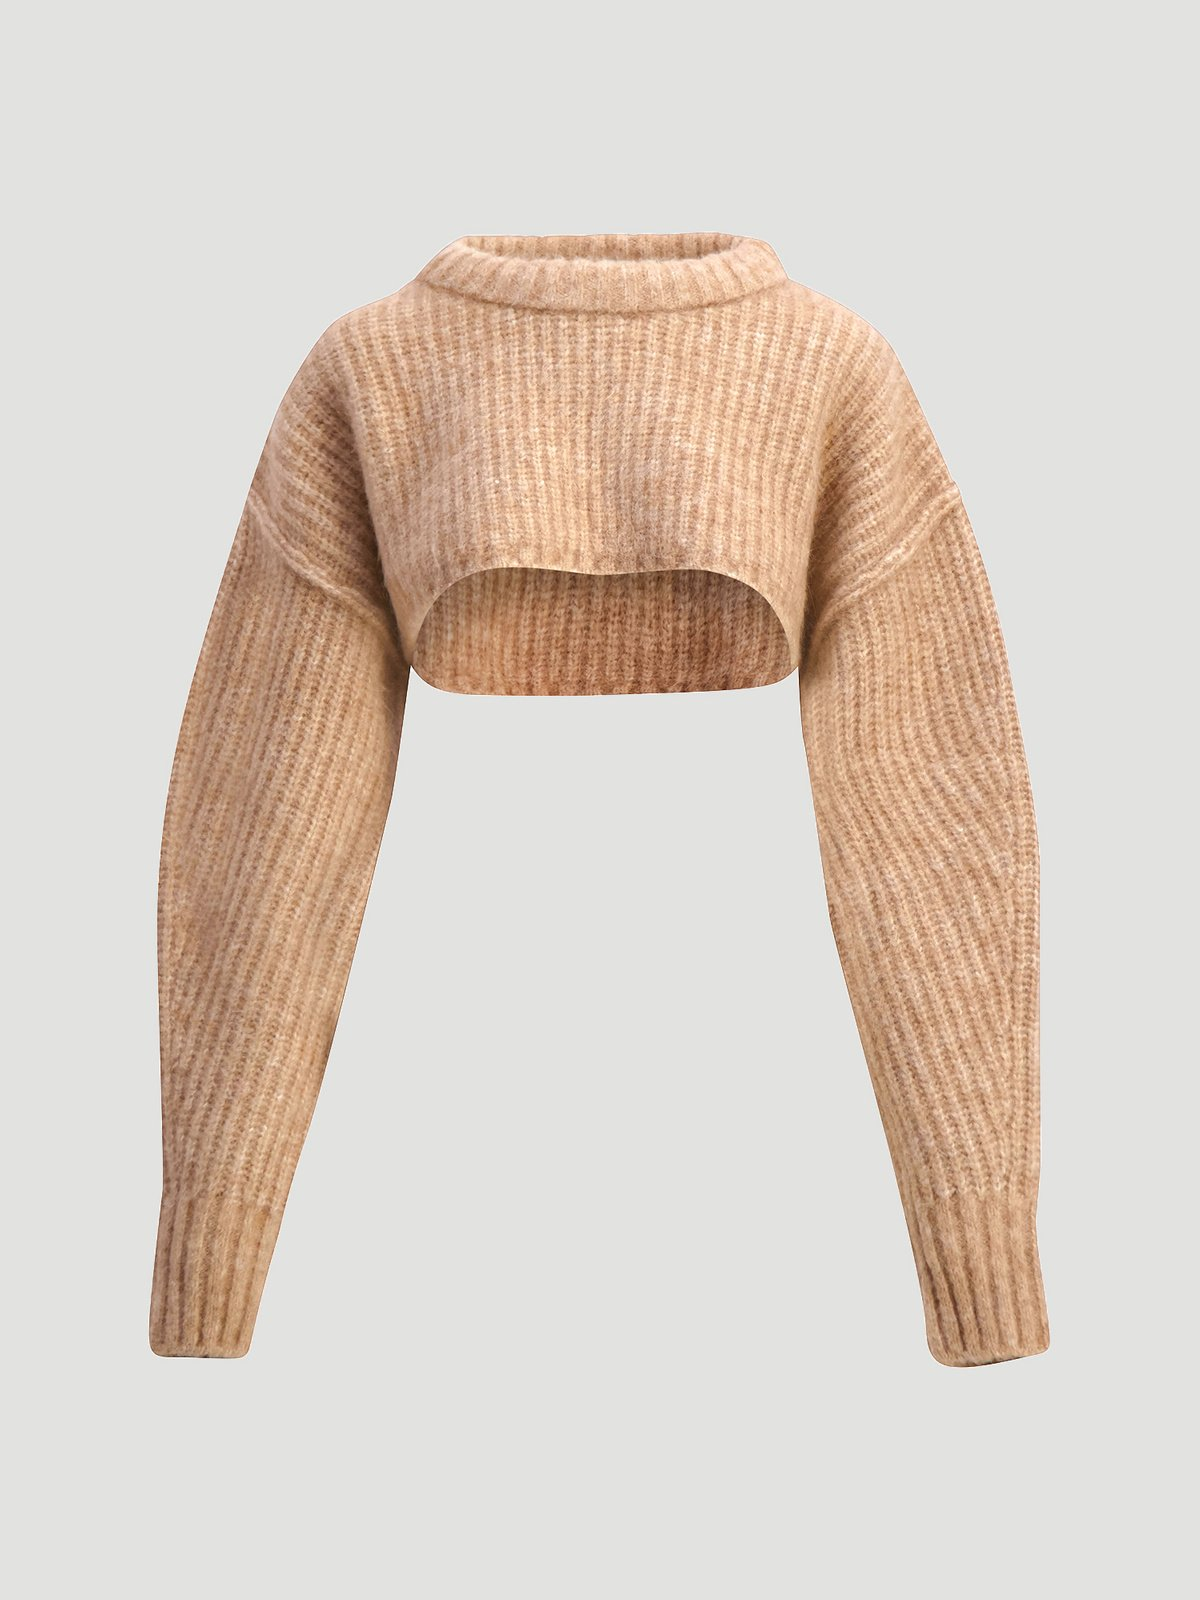 Bored Cropped Knit  Sand 7